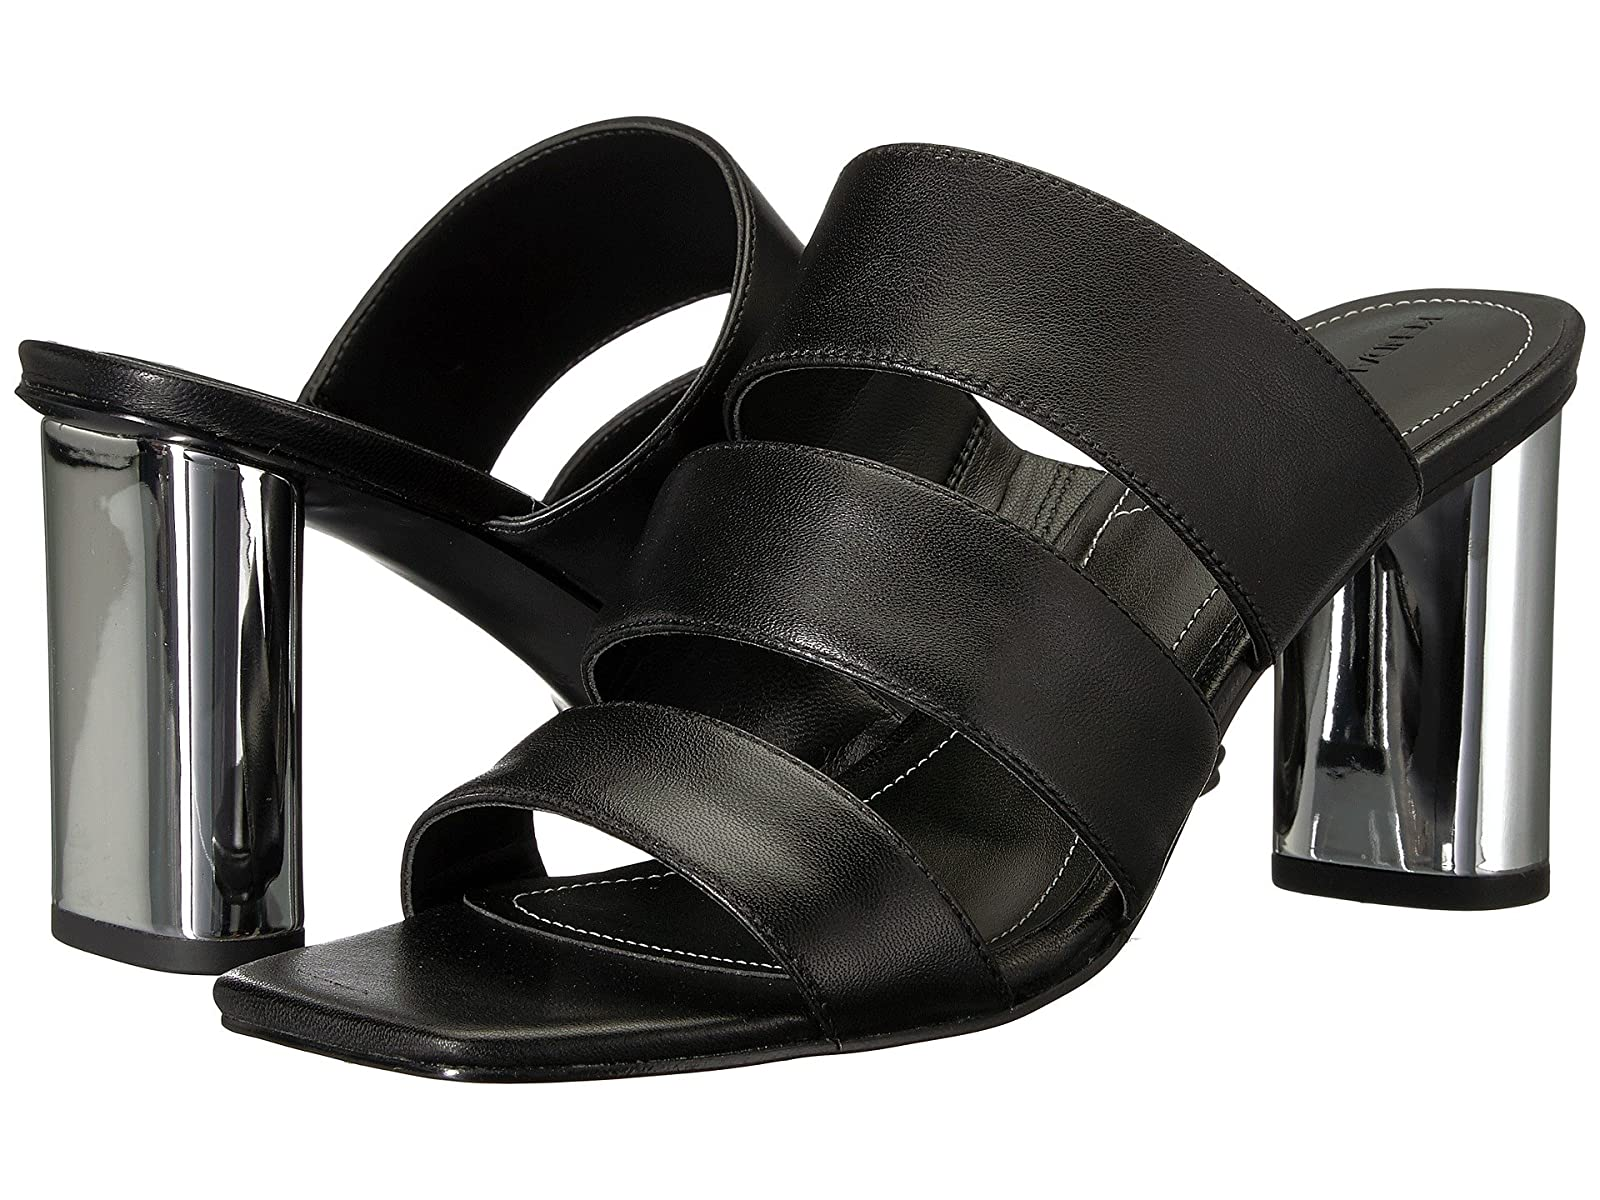 KENDALL + KYLIE LeilaCheap and distinctive eye-catching shoes